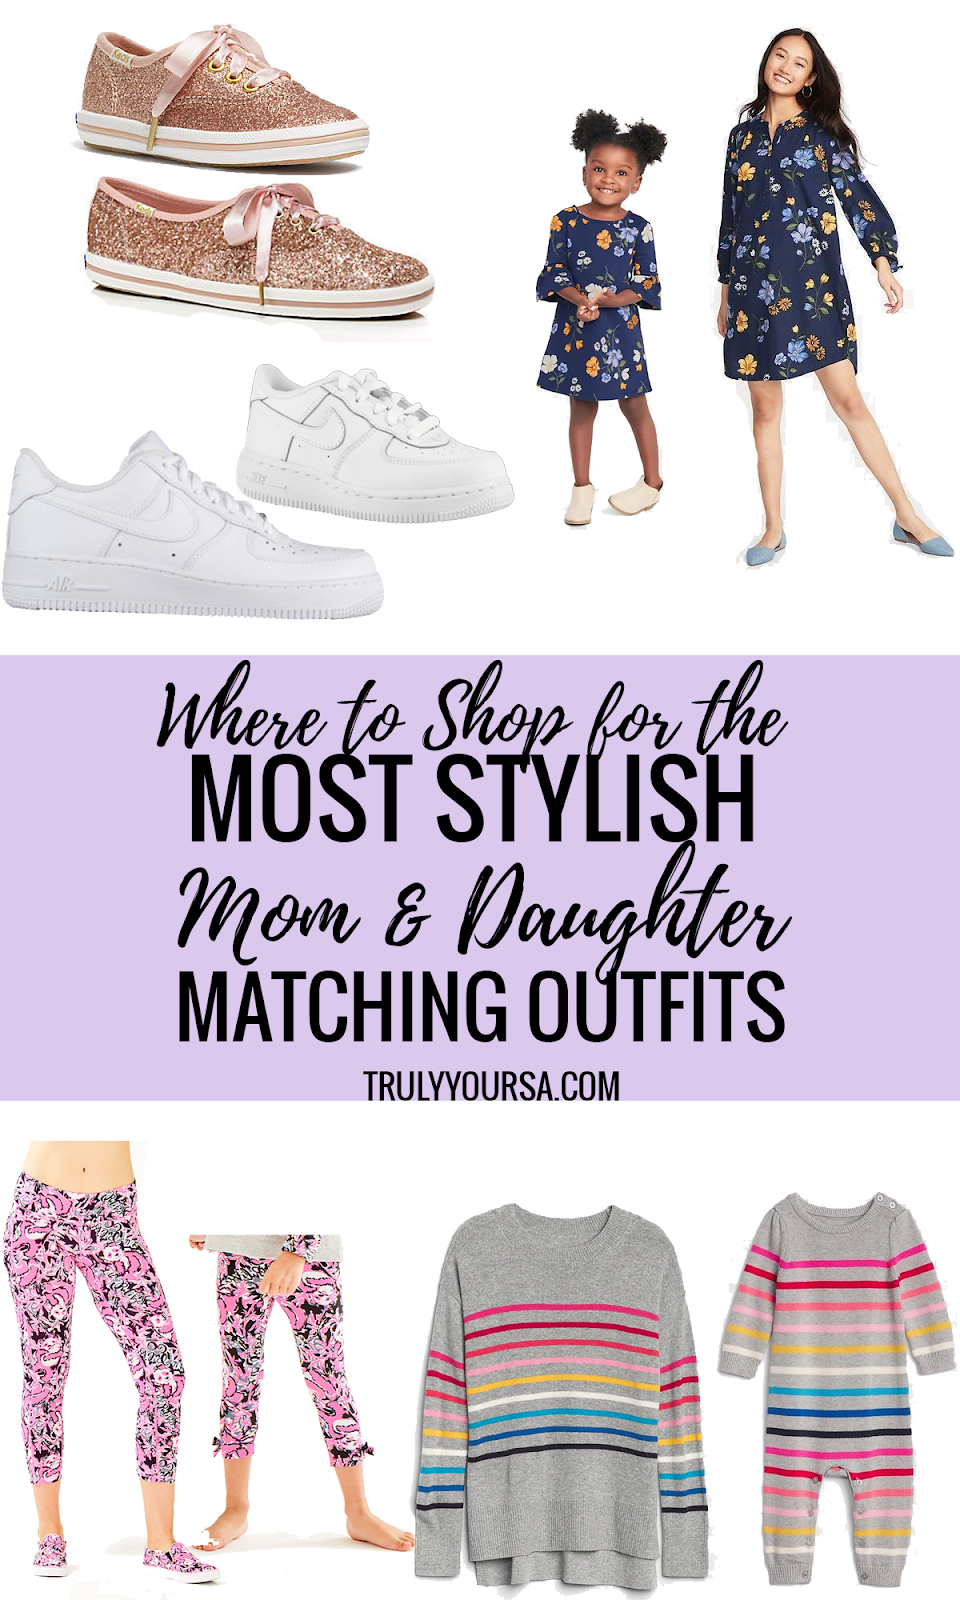 Have you ever stood in front of your closet and not been able to figure out what to wear? *Raises own hand enthusiastically* It's almost impossible for me to pick out an outfit for myself, but it's so easy to dress McKenna so I take cues from her closet and we end up matching most of the time! There are so many brands that offer Mom and Daughter (and even Son!) matching pieces and I've gathered a few of my favorite items from all of them to help you create mini matching moments of your own! #momstyle #momdaughtermatching #momdaughterfashion